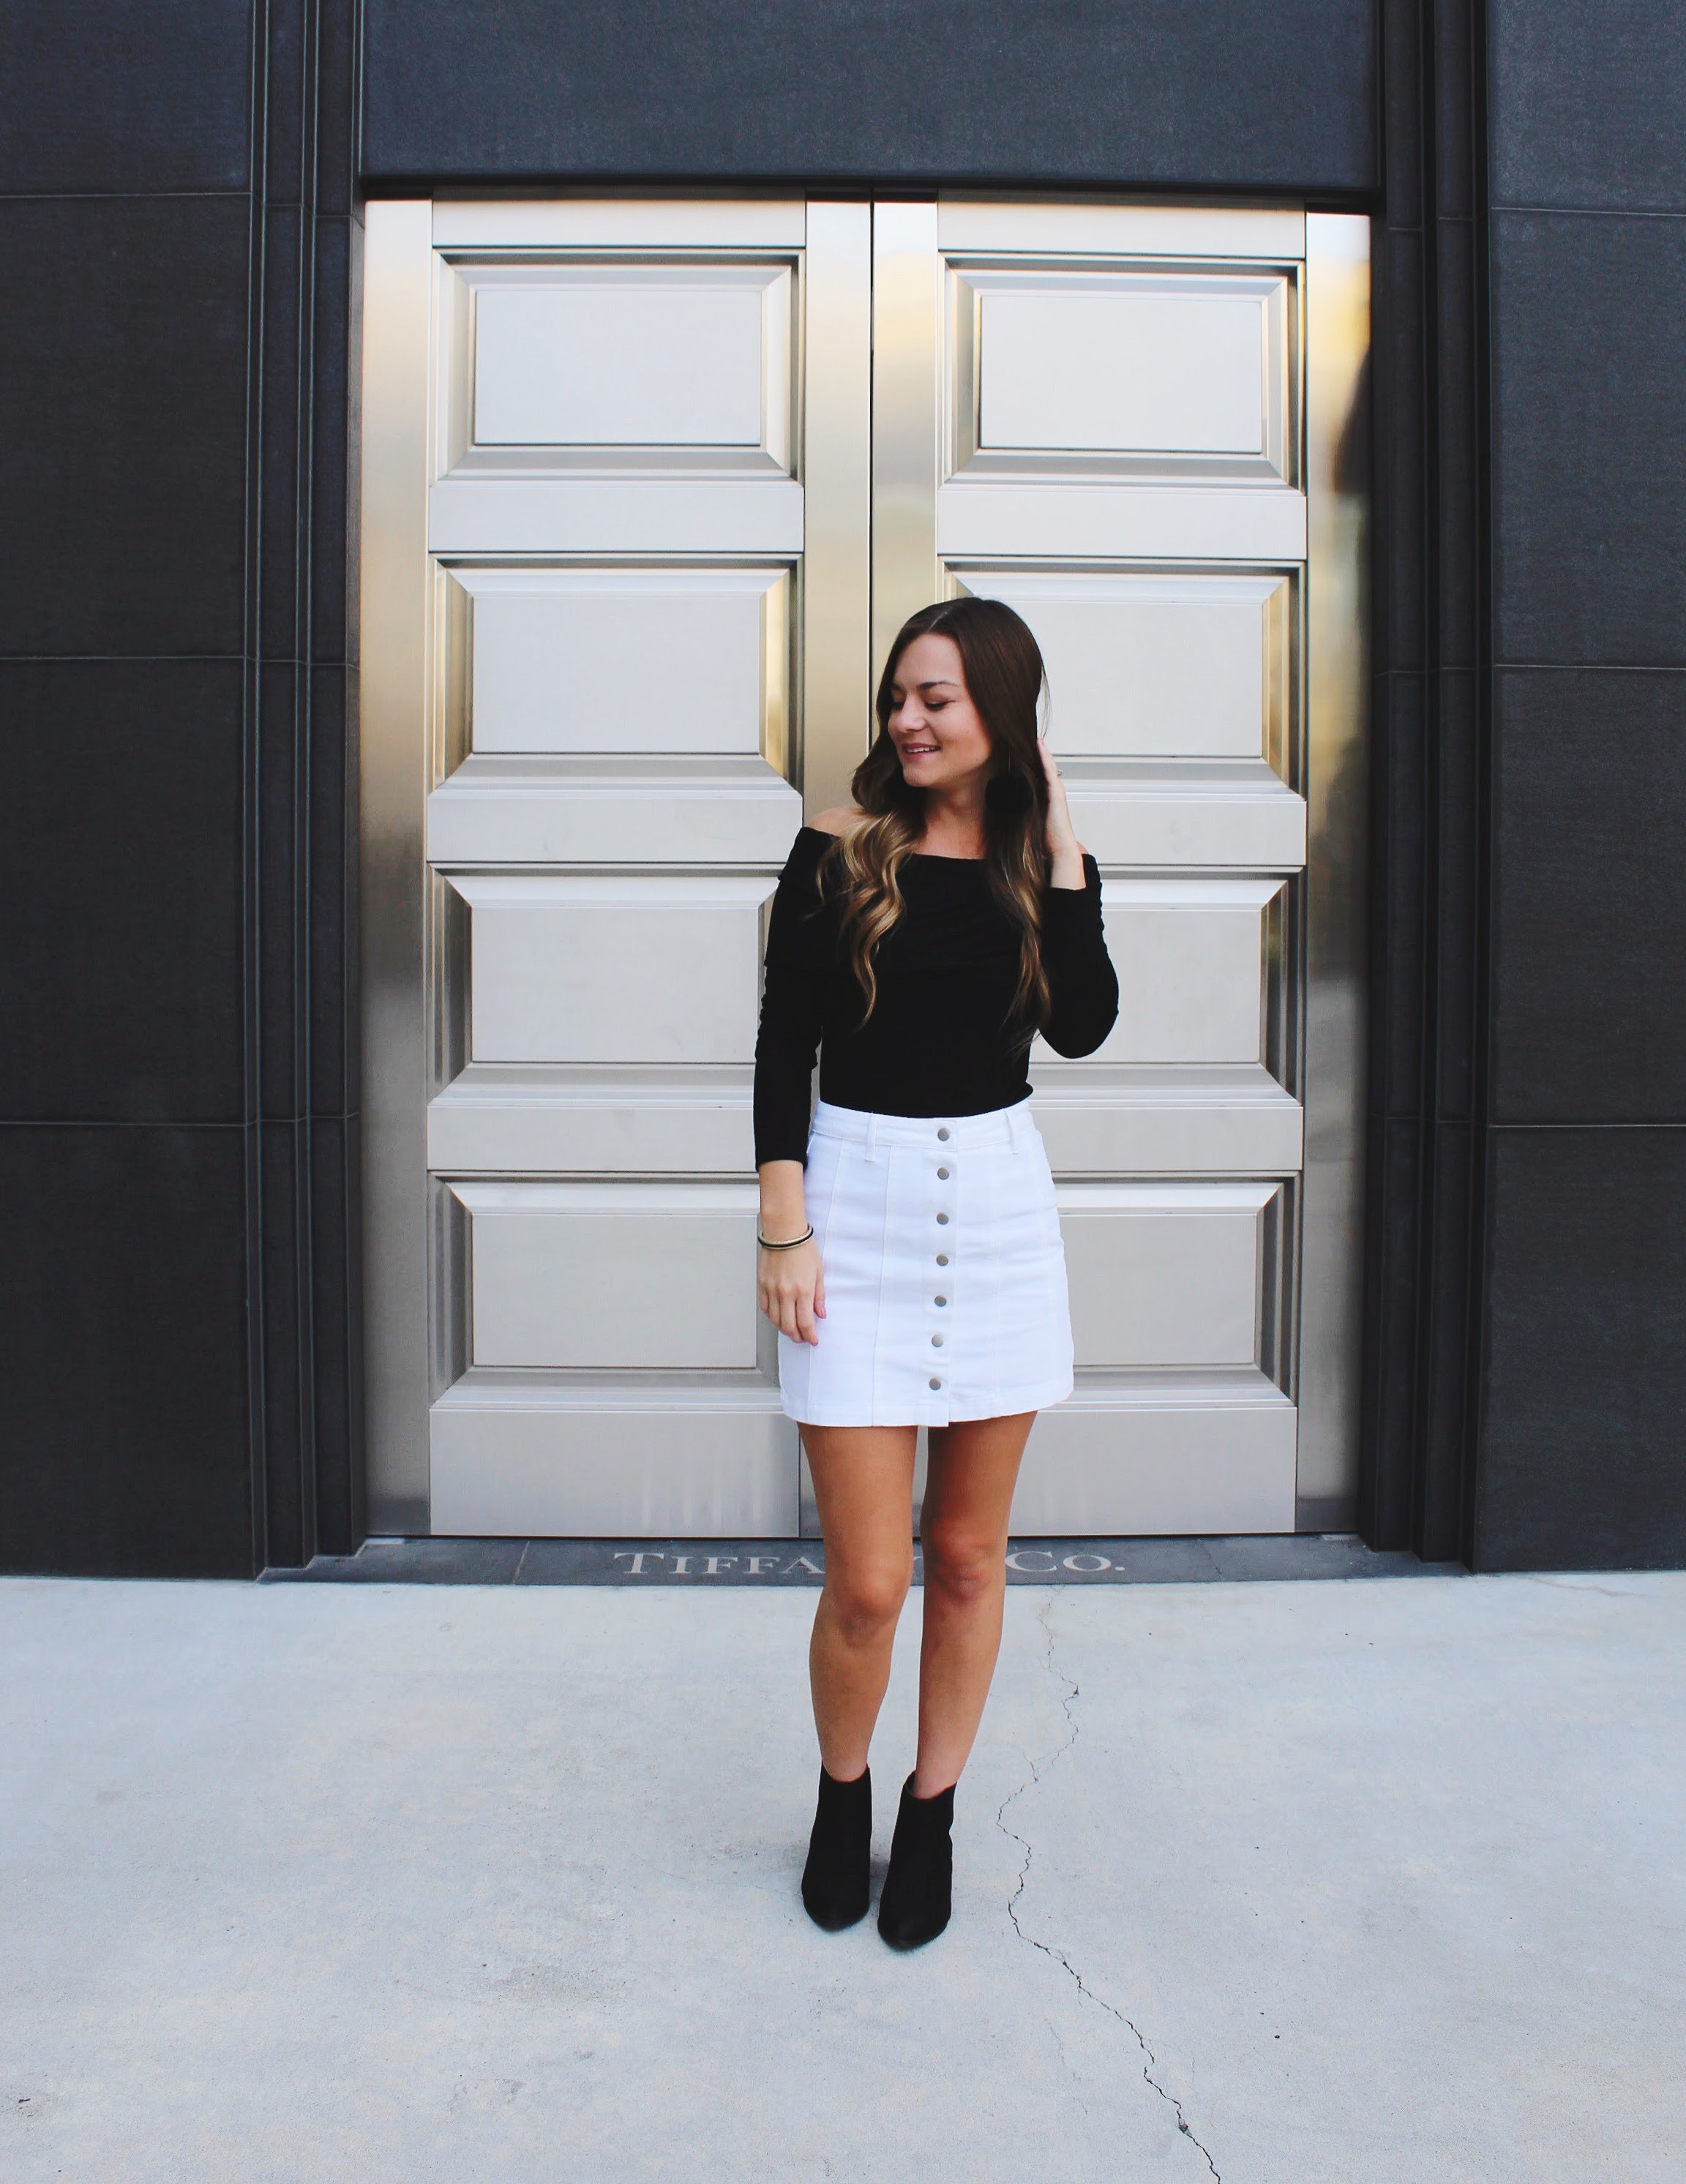 Fall Fashion/ transitional weather outfits/ black off the shoulder top / white button down skirt/ black ankle boots